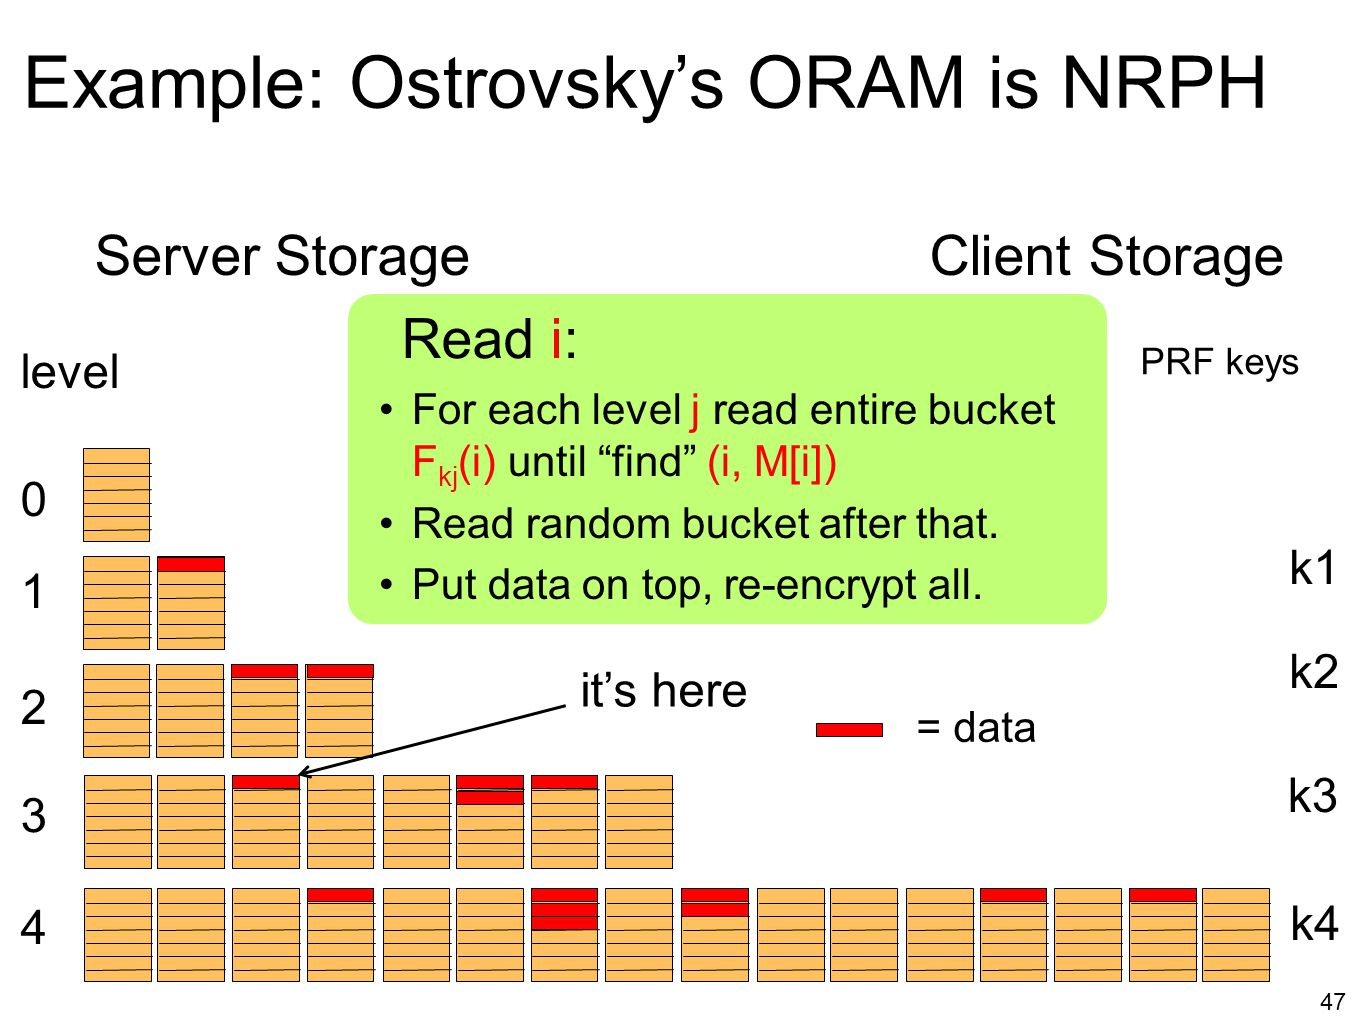 Example: Ostrovsky's ORAM is NRPH